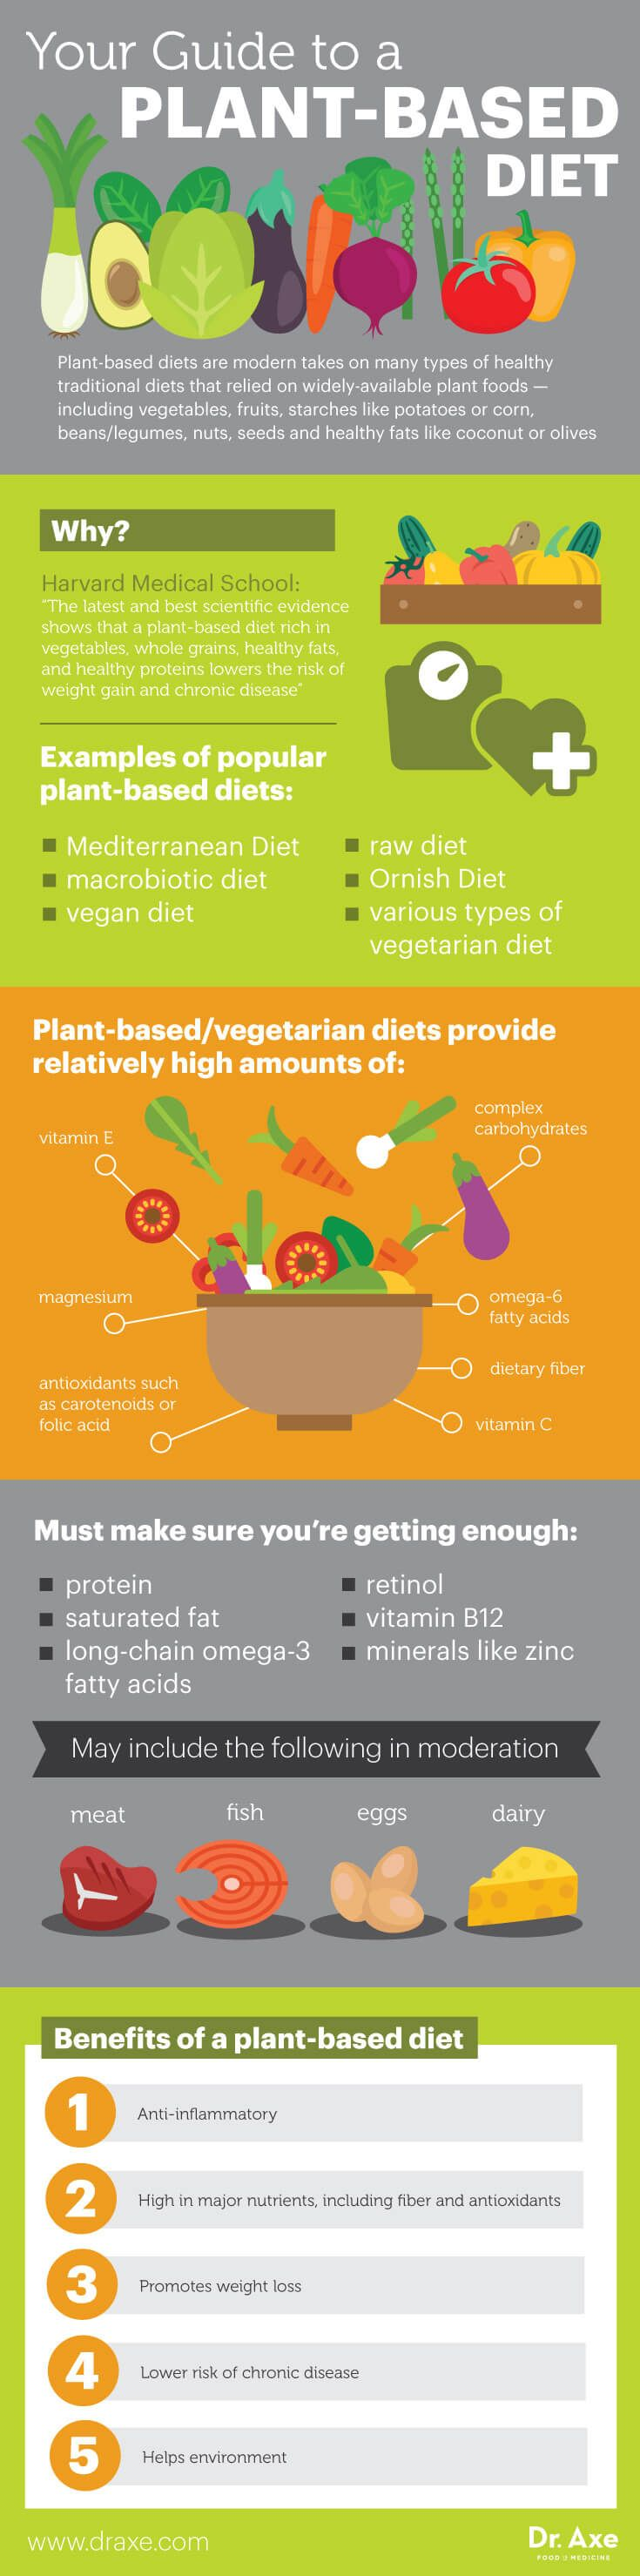 Plant-Based Diet: Disease-Protective Promotes Major Weight Loss - Dr. Axe